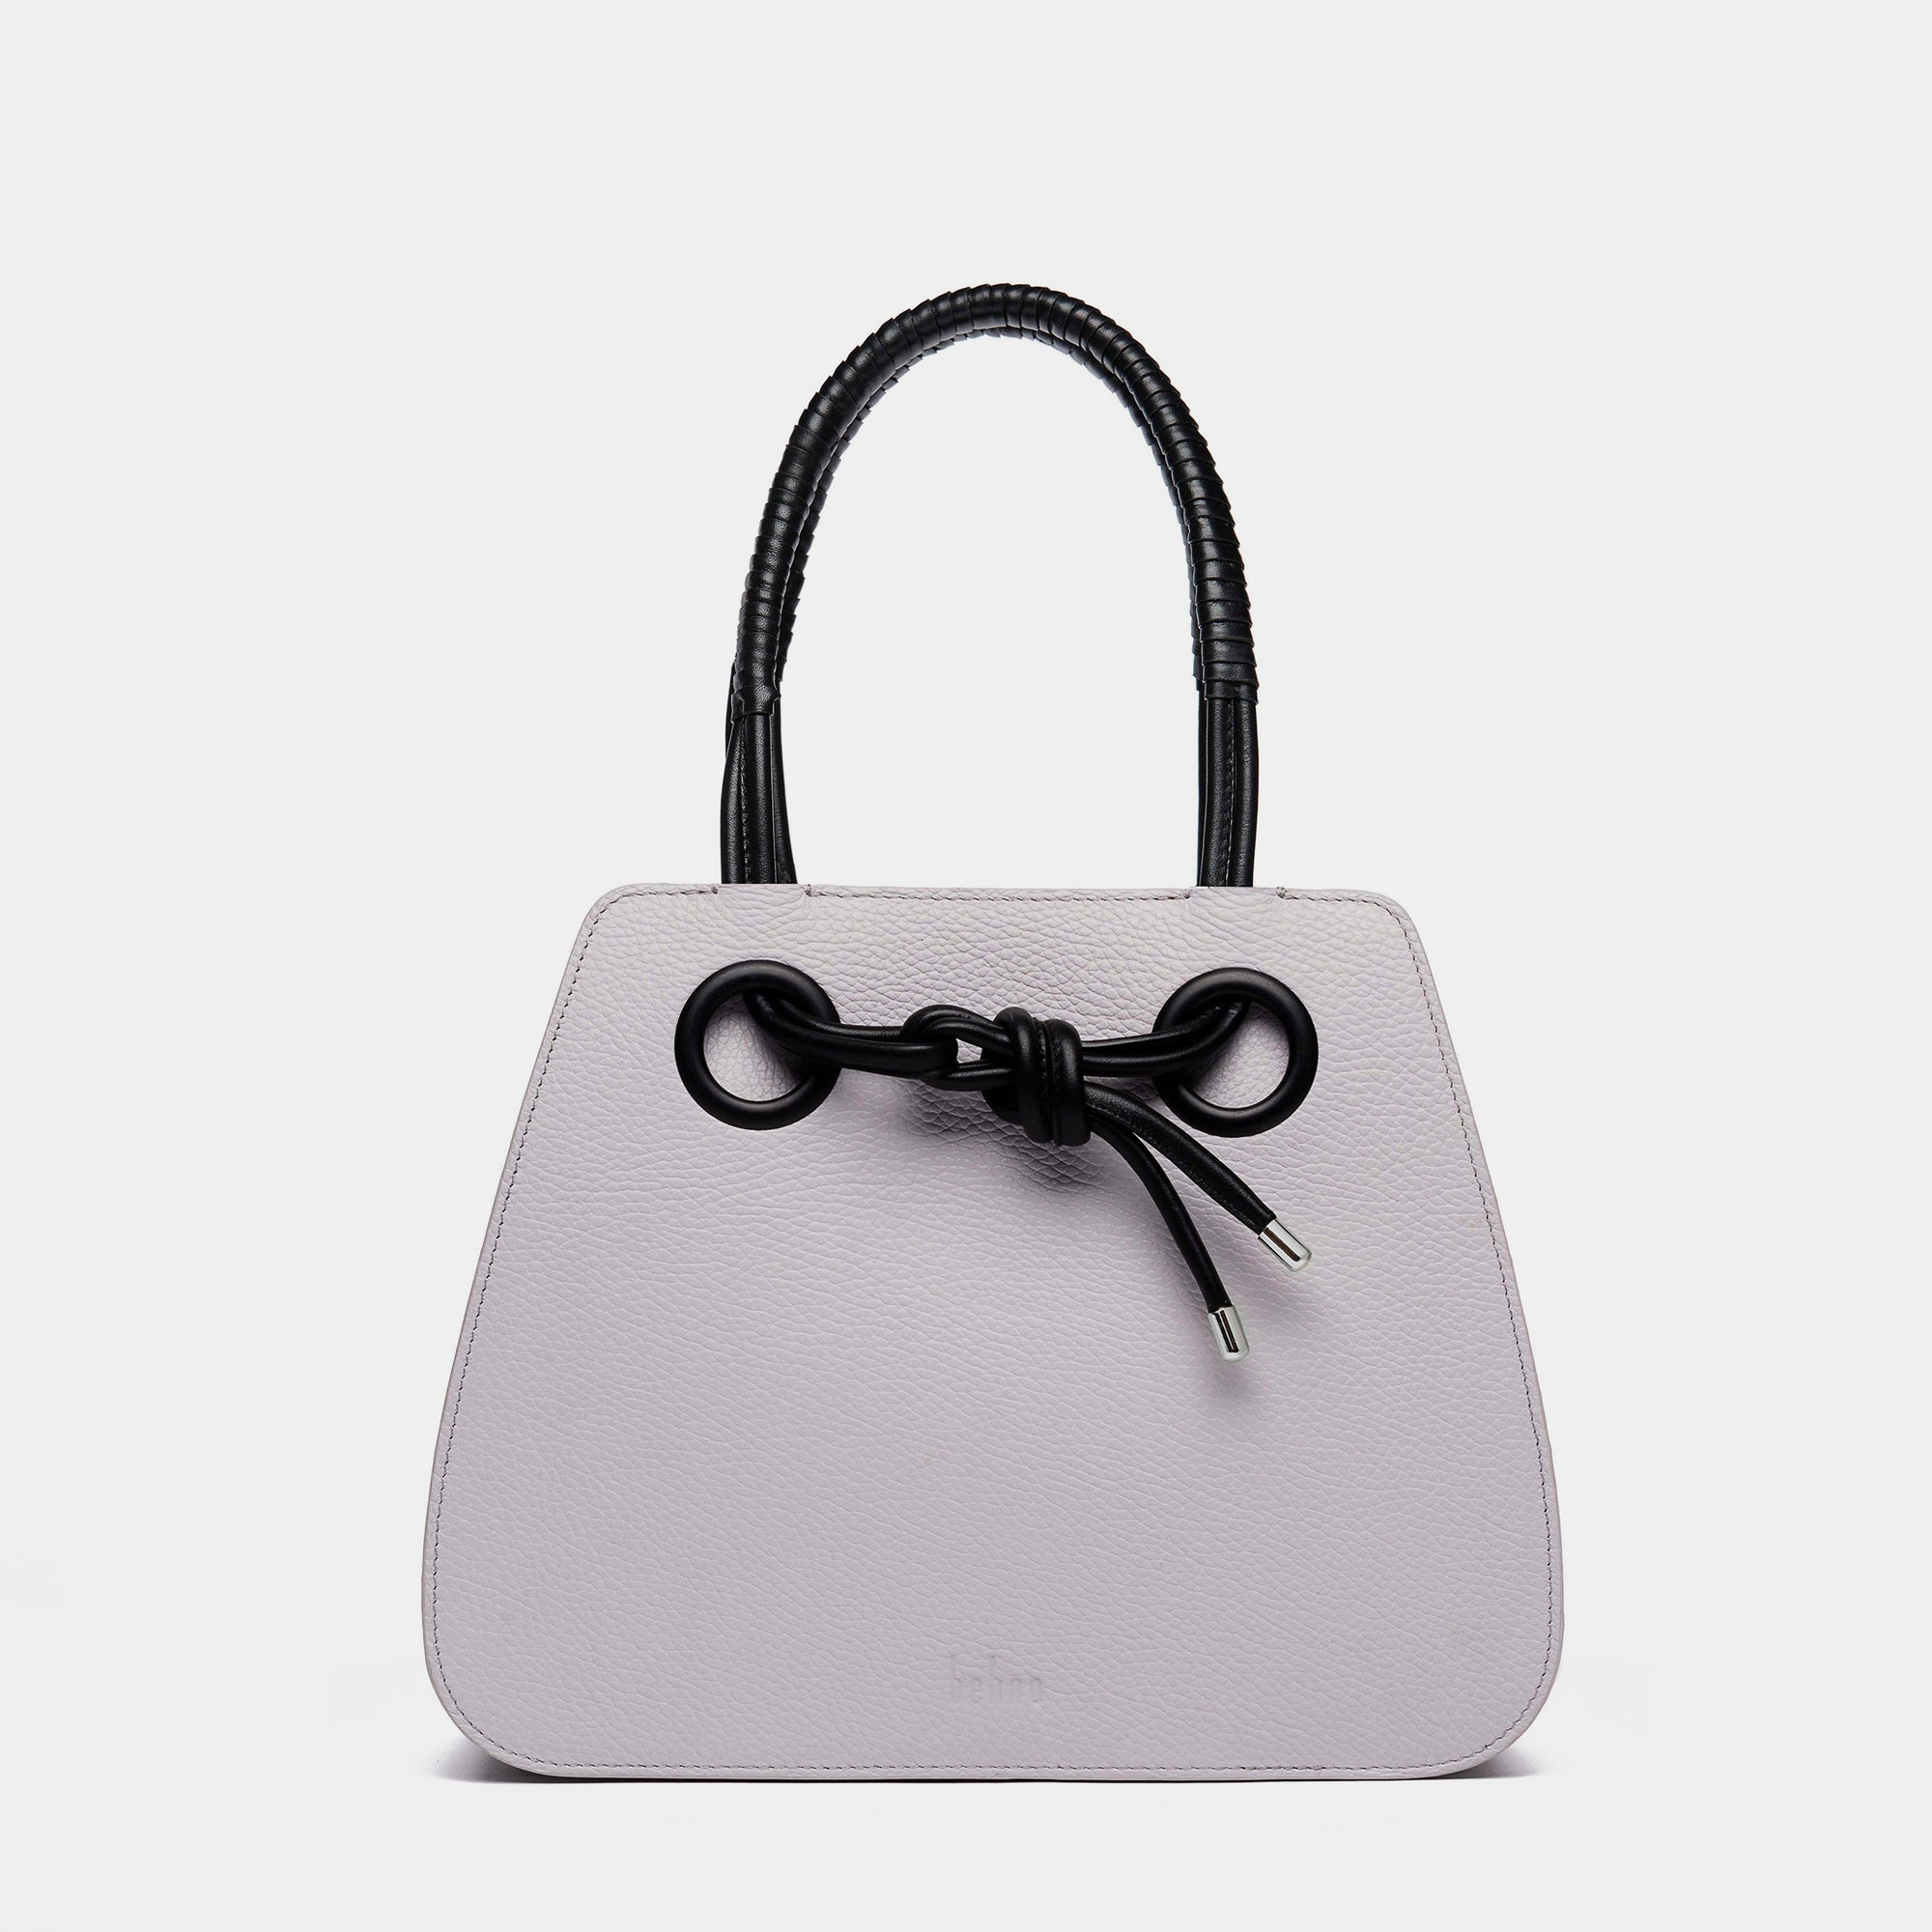 JACQUI BAG PEBBLE STONE